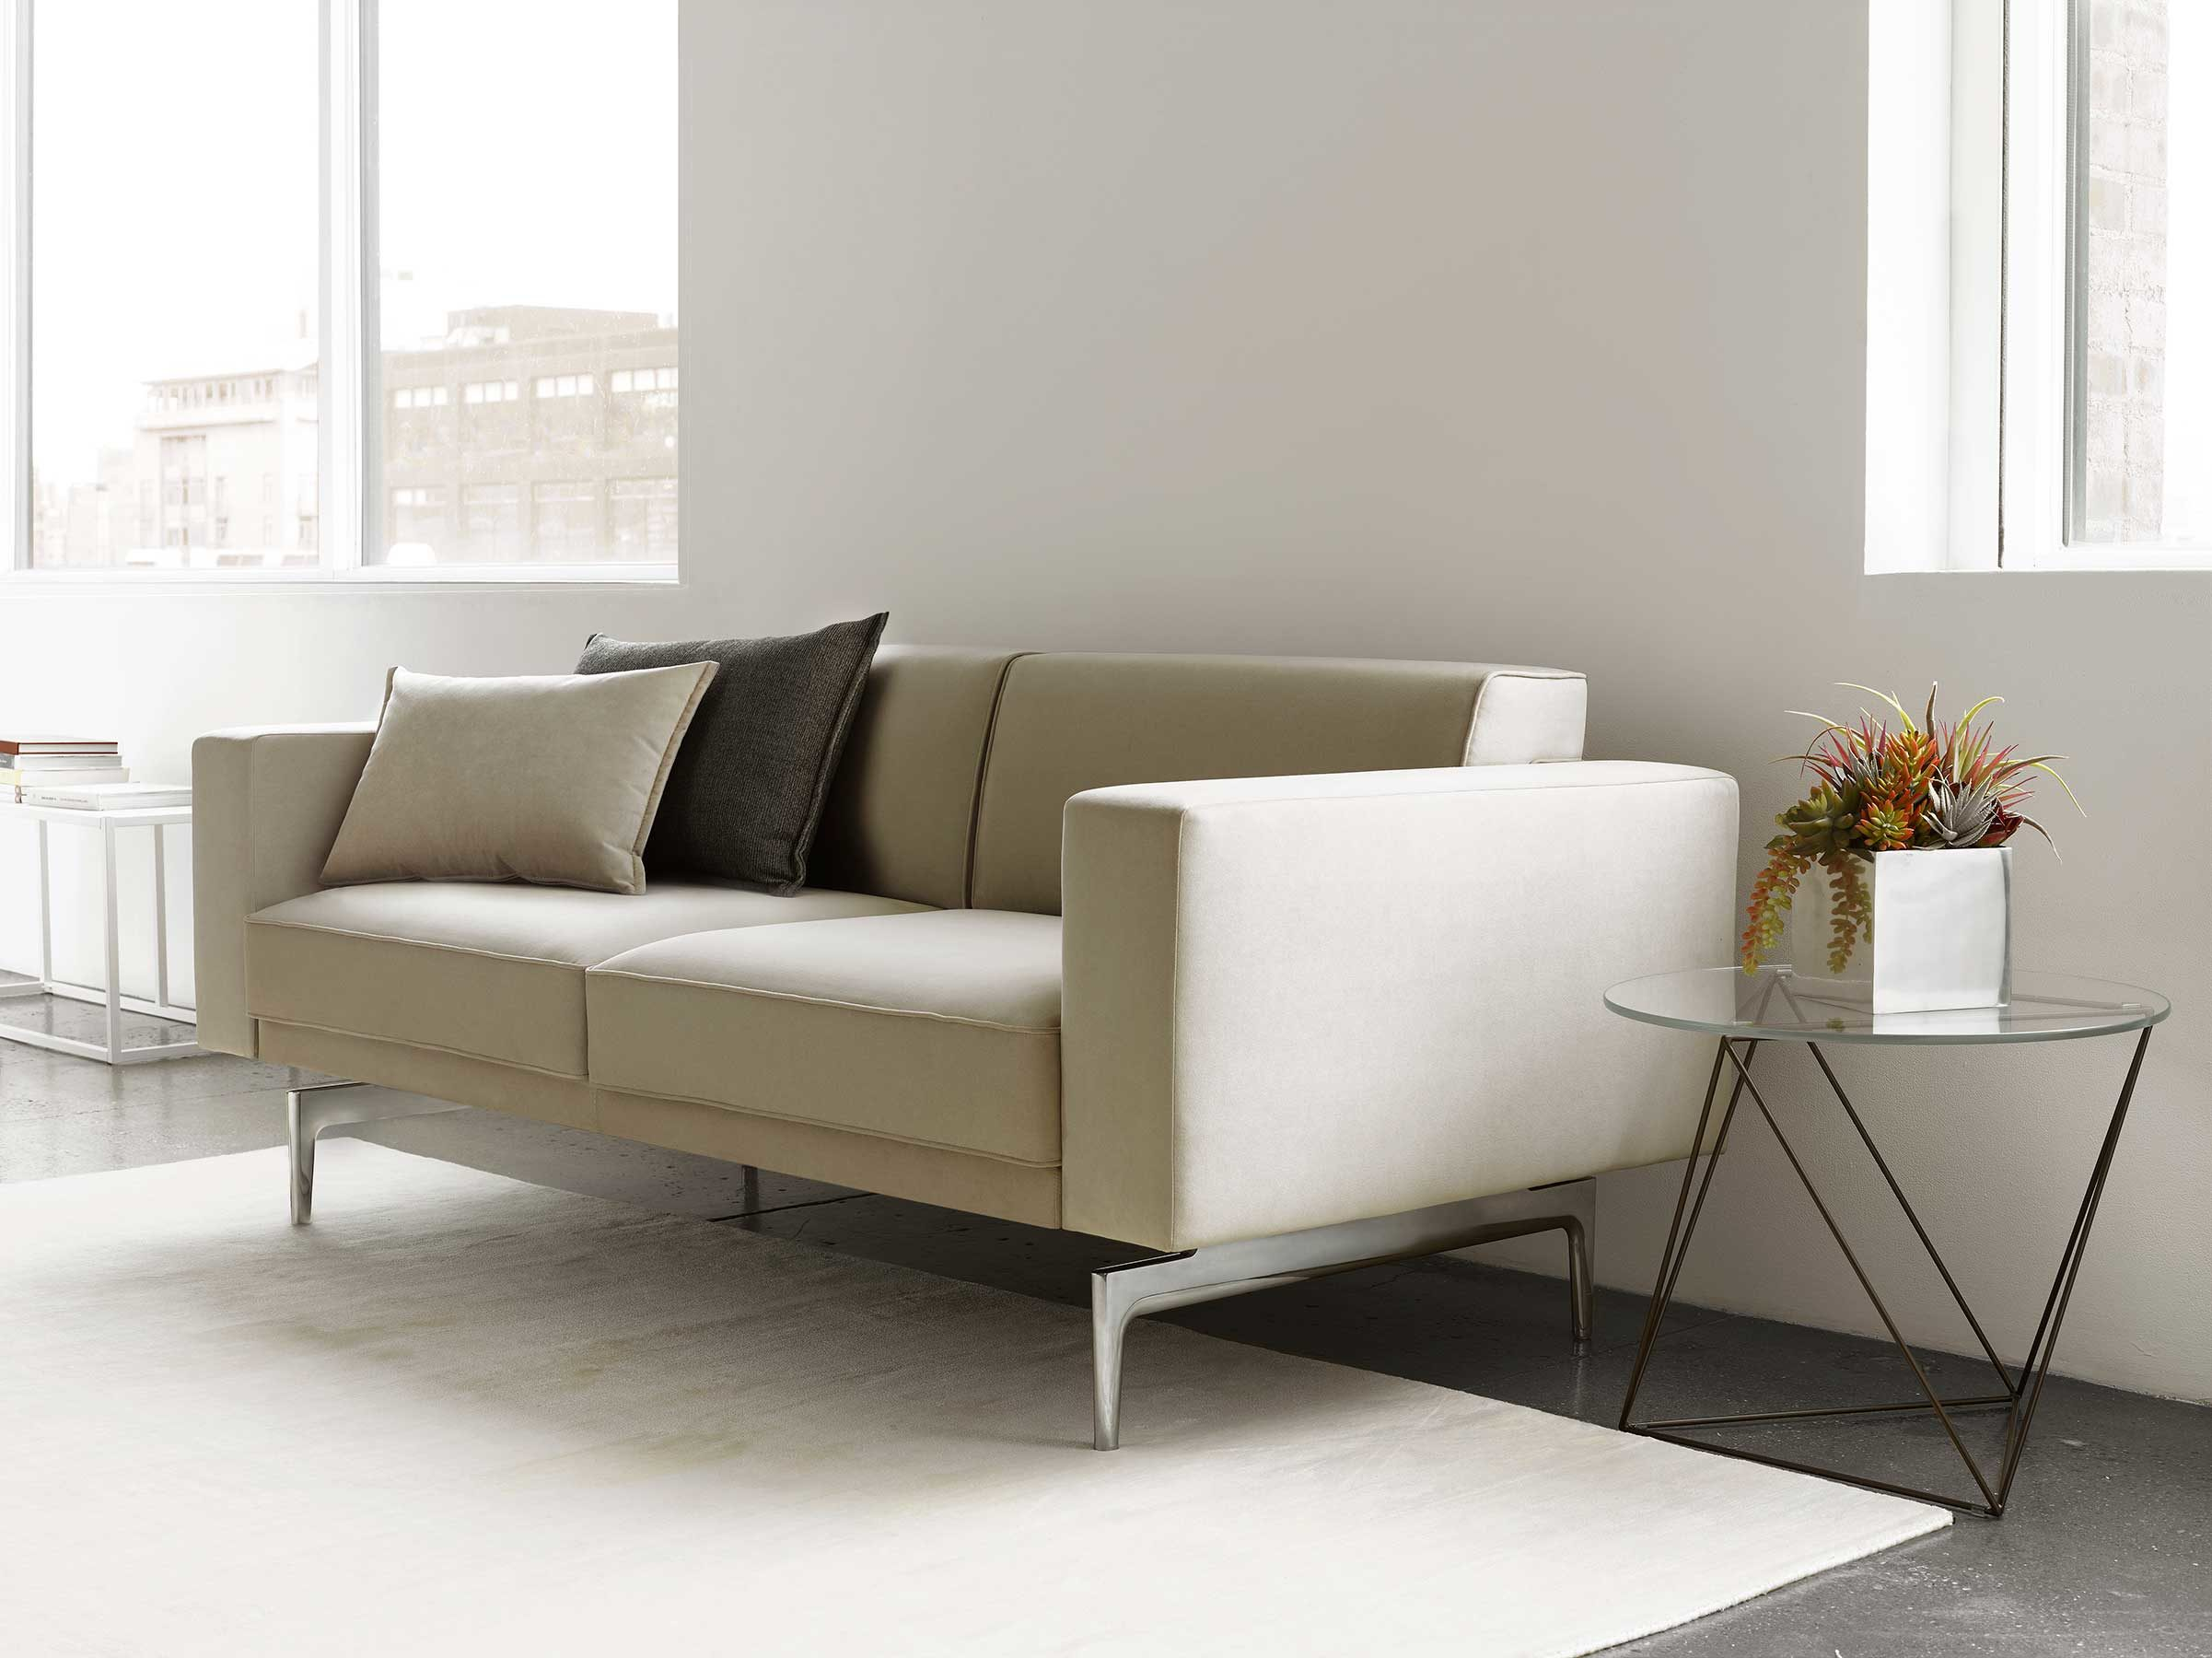 Sofa Lounge Nyc Sofa Nyc Modular Sofa Corner Contemporary Fabric Nyc